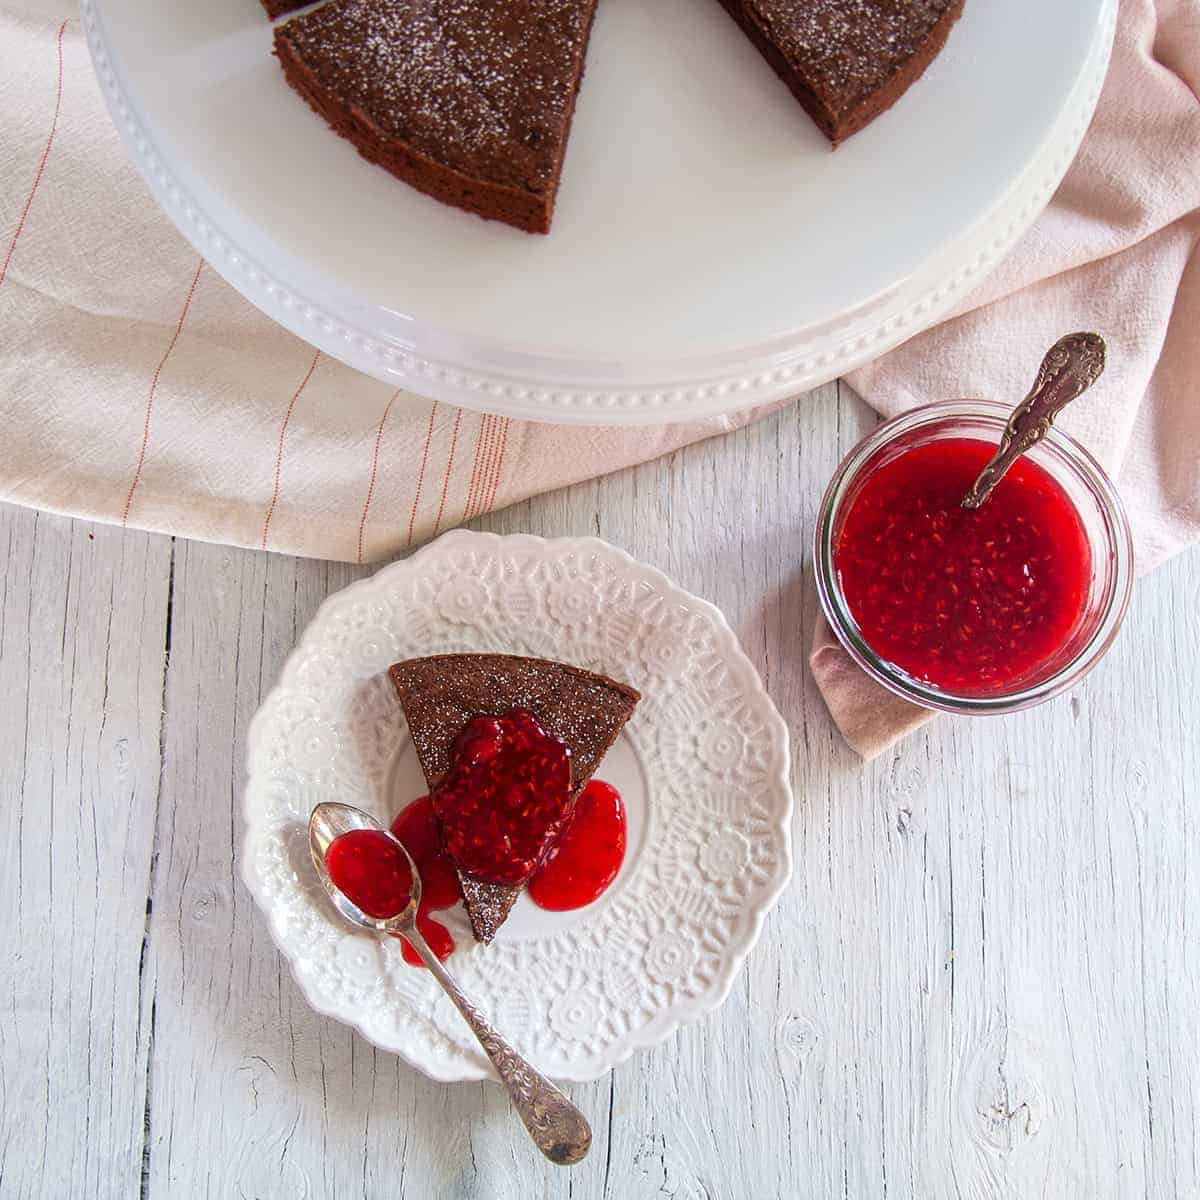 One slice of our Kladdkaka Swedish Sticky Cake on a white plate, covered in raspberry topping and a spoon to the side.